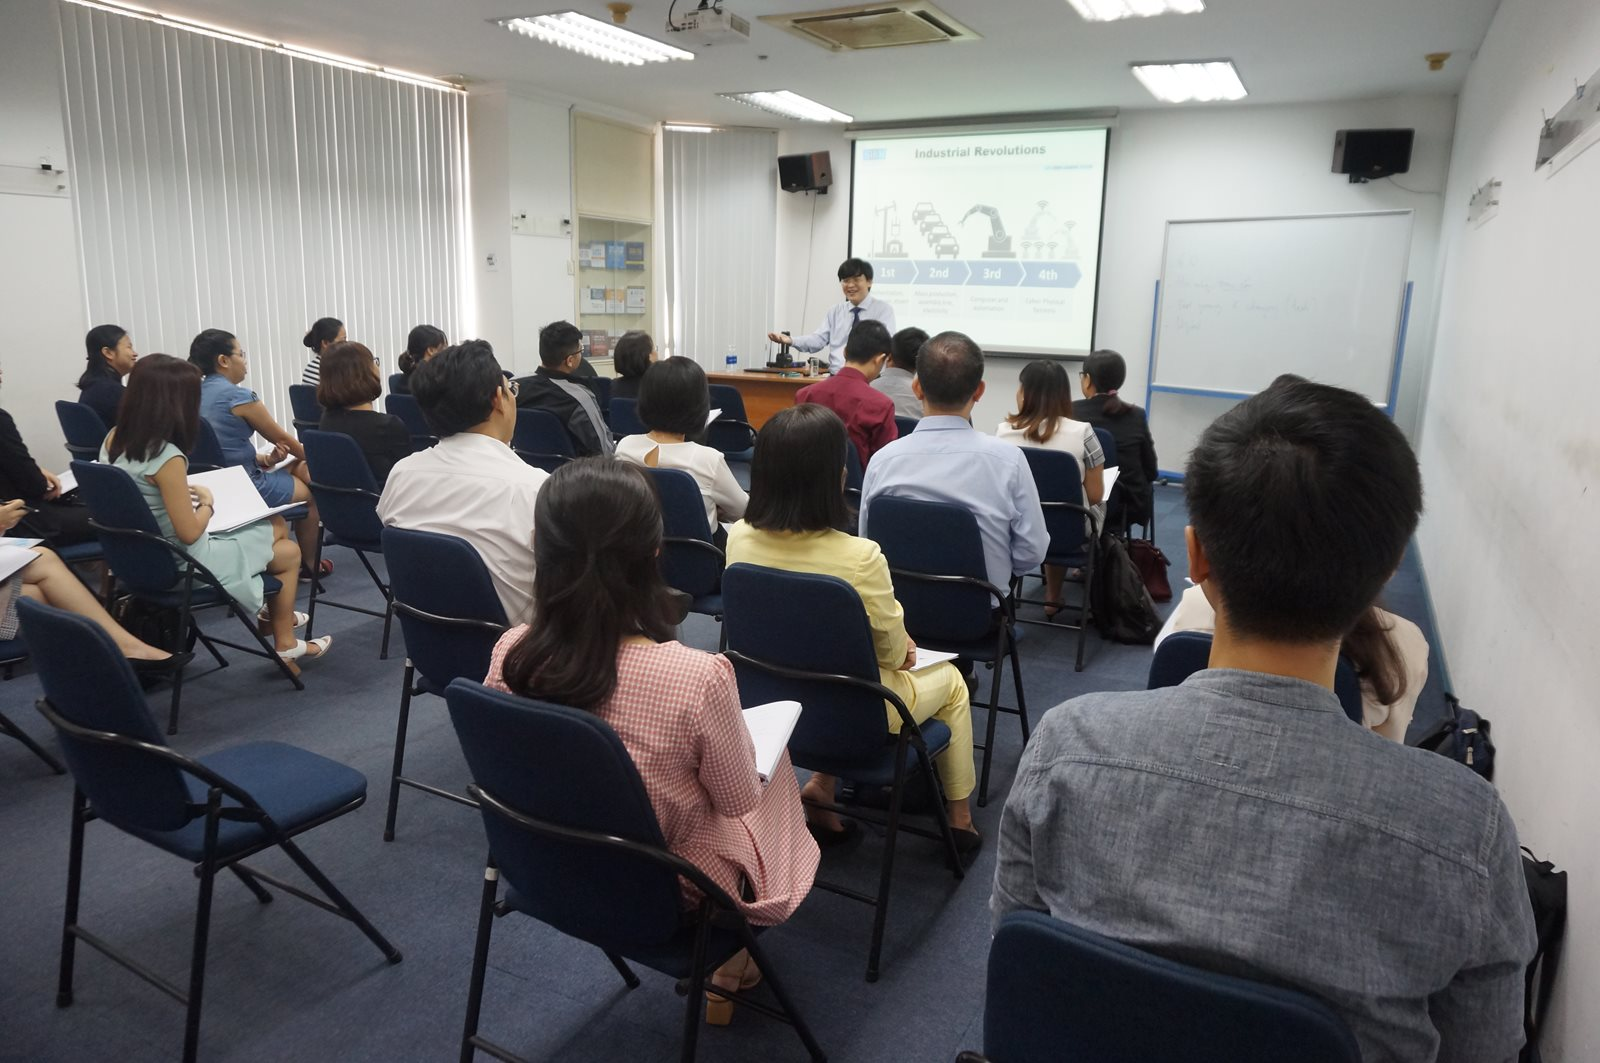 HR SEMINAR INTERNATIONAL HUMAN RESOURCE MANAGEMENT: INDUSTRY 4.0 AFFECTING HUMAN RESOURCES MANAGEMENT